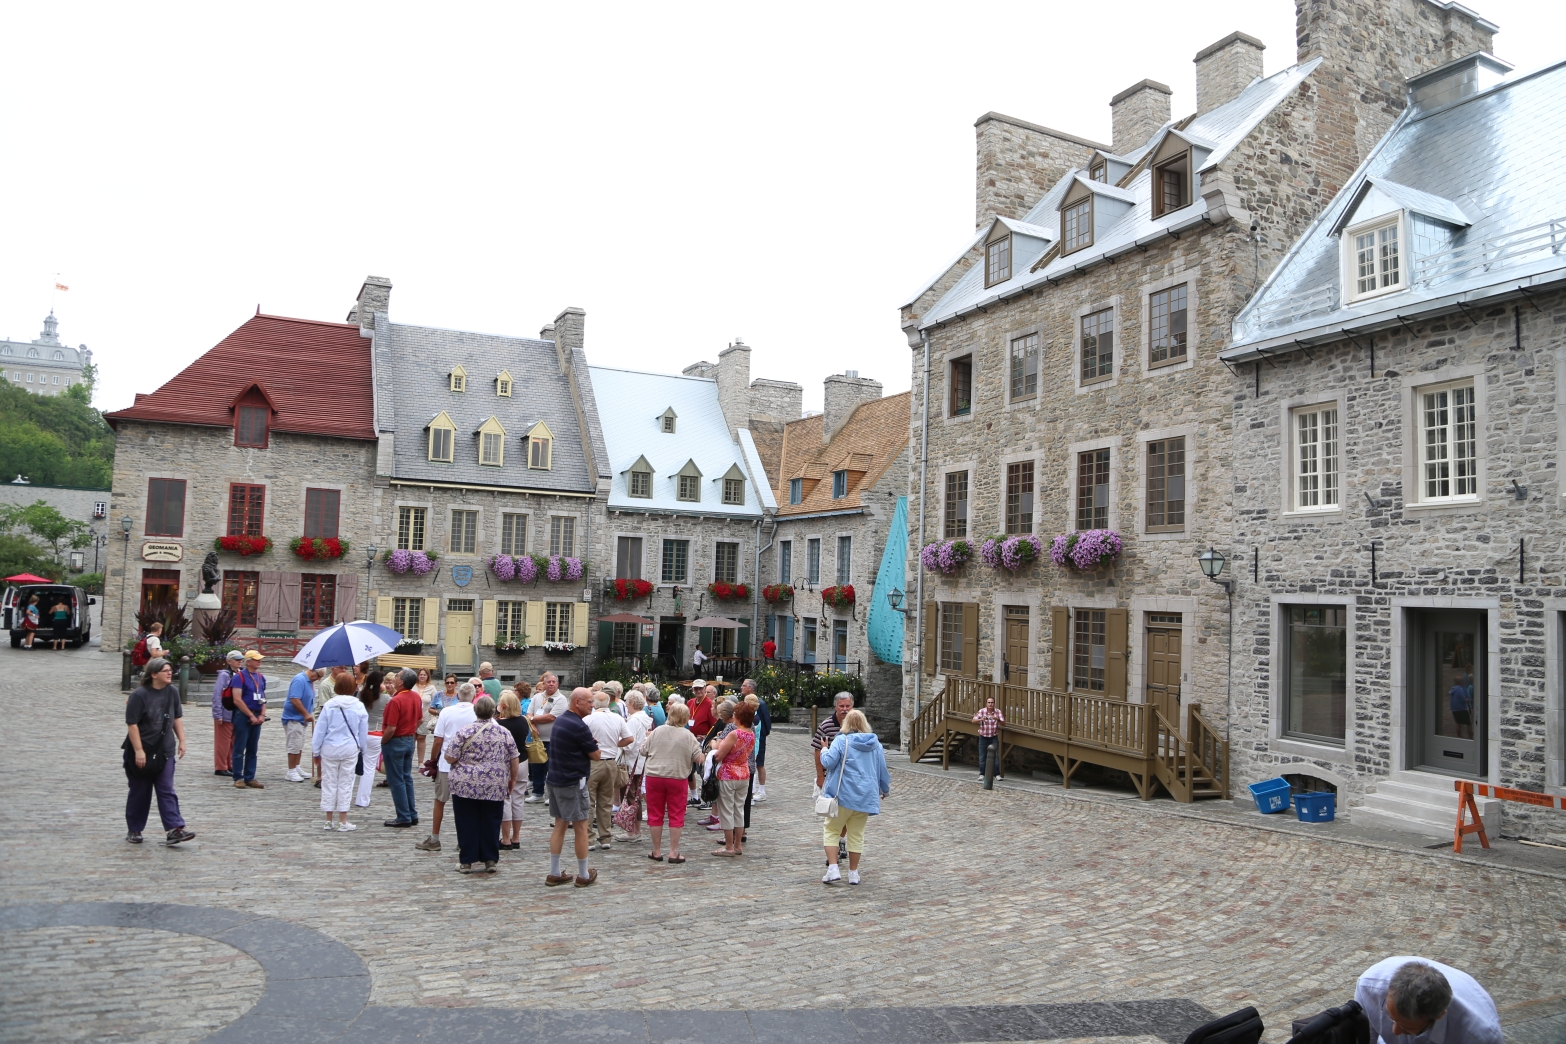 Place Royale, one of the oldest public squares in the province.